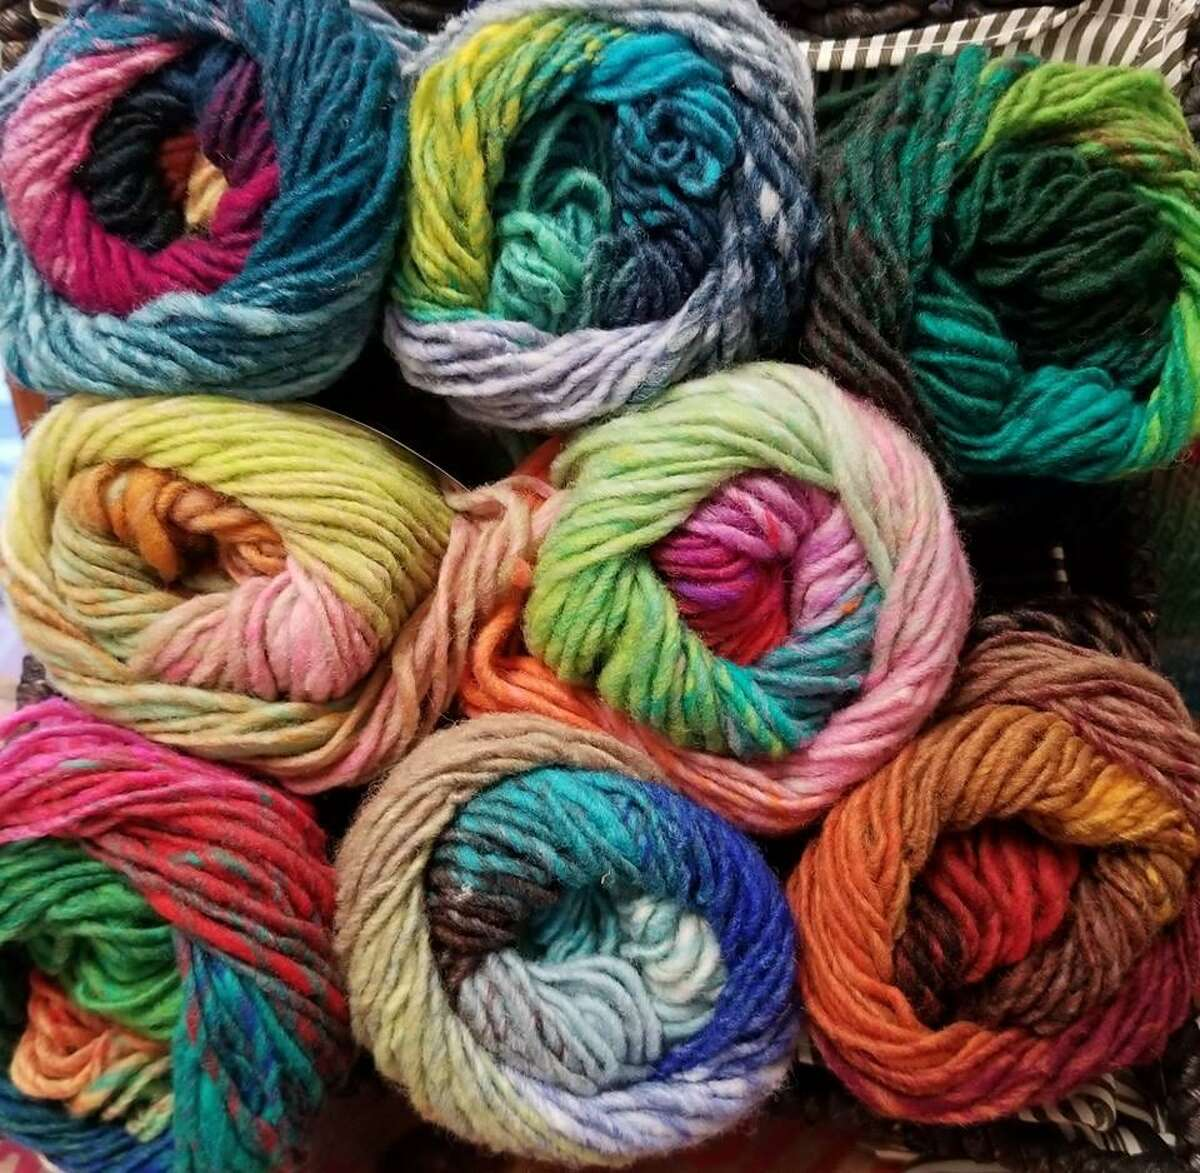 There's no end to the amount of yarn a knitter can collect.